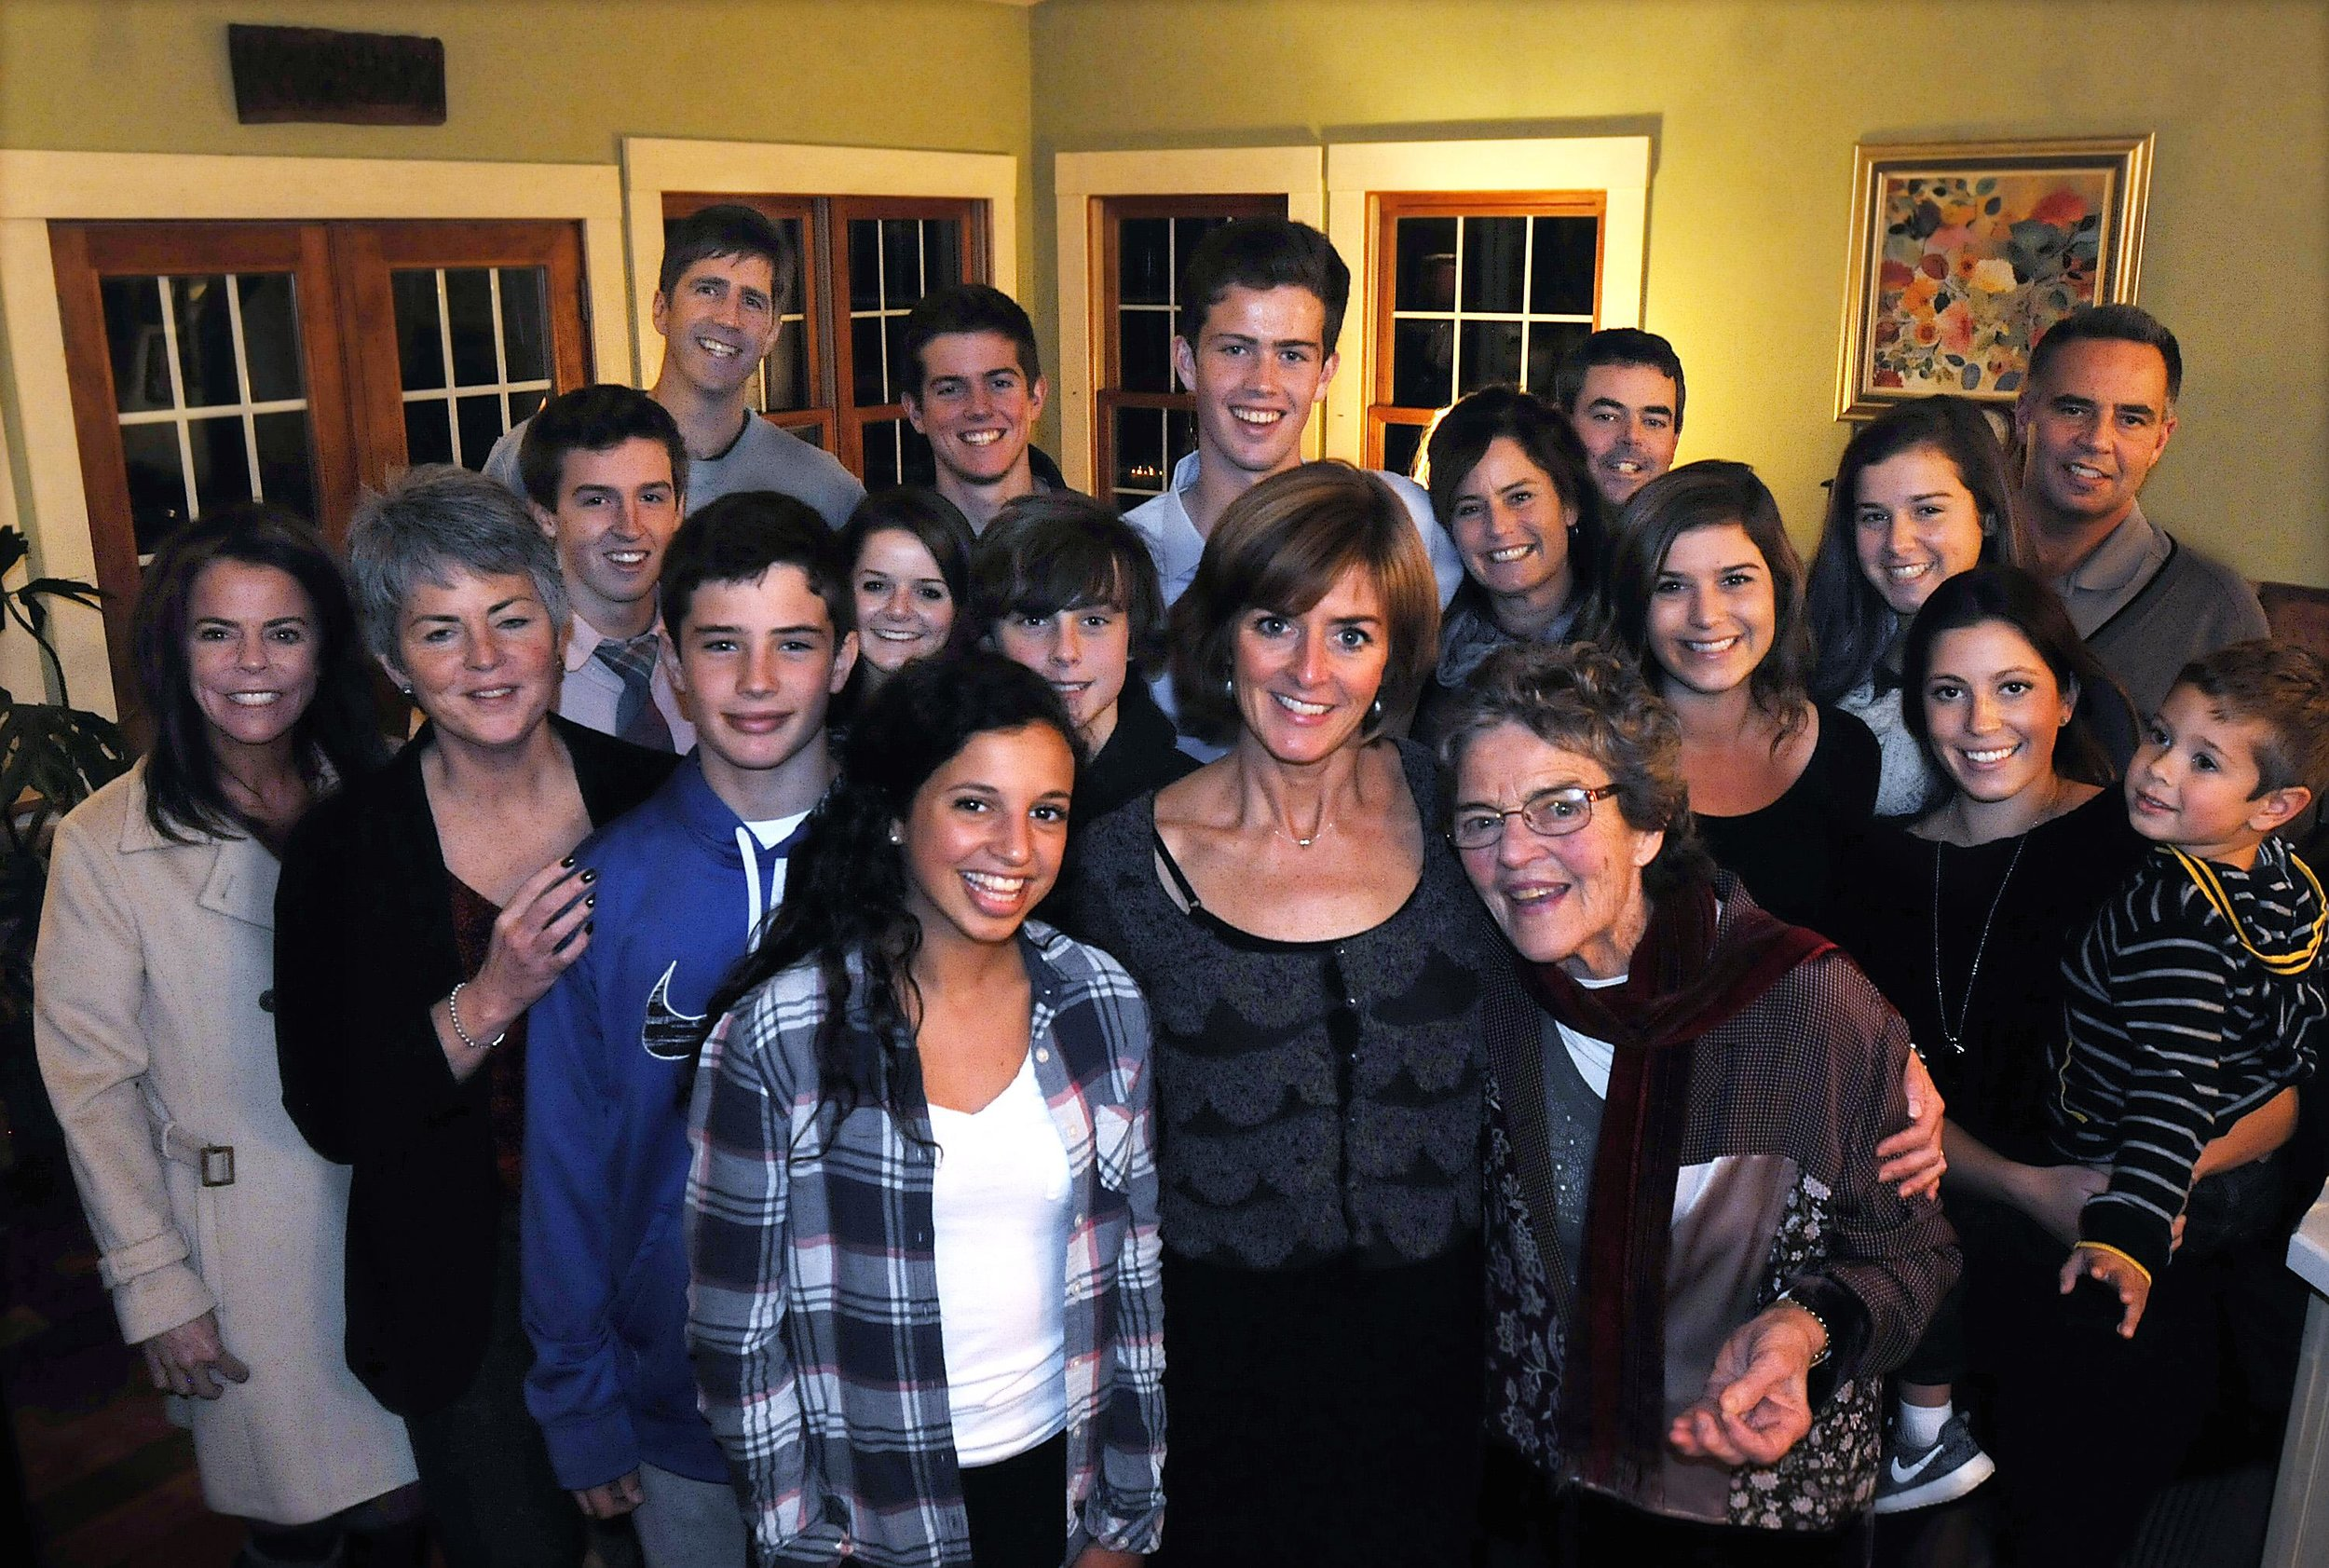 Members of the extended O'Connor family